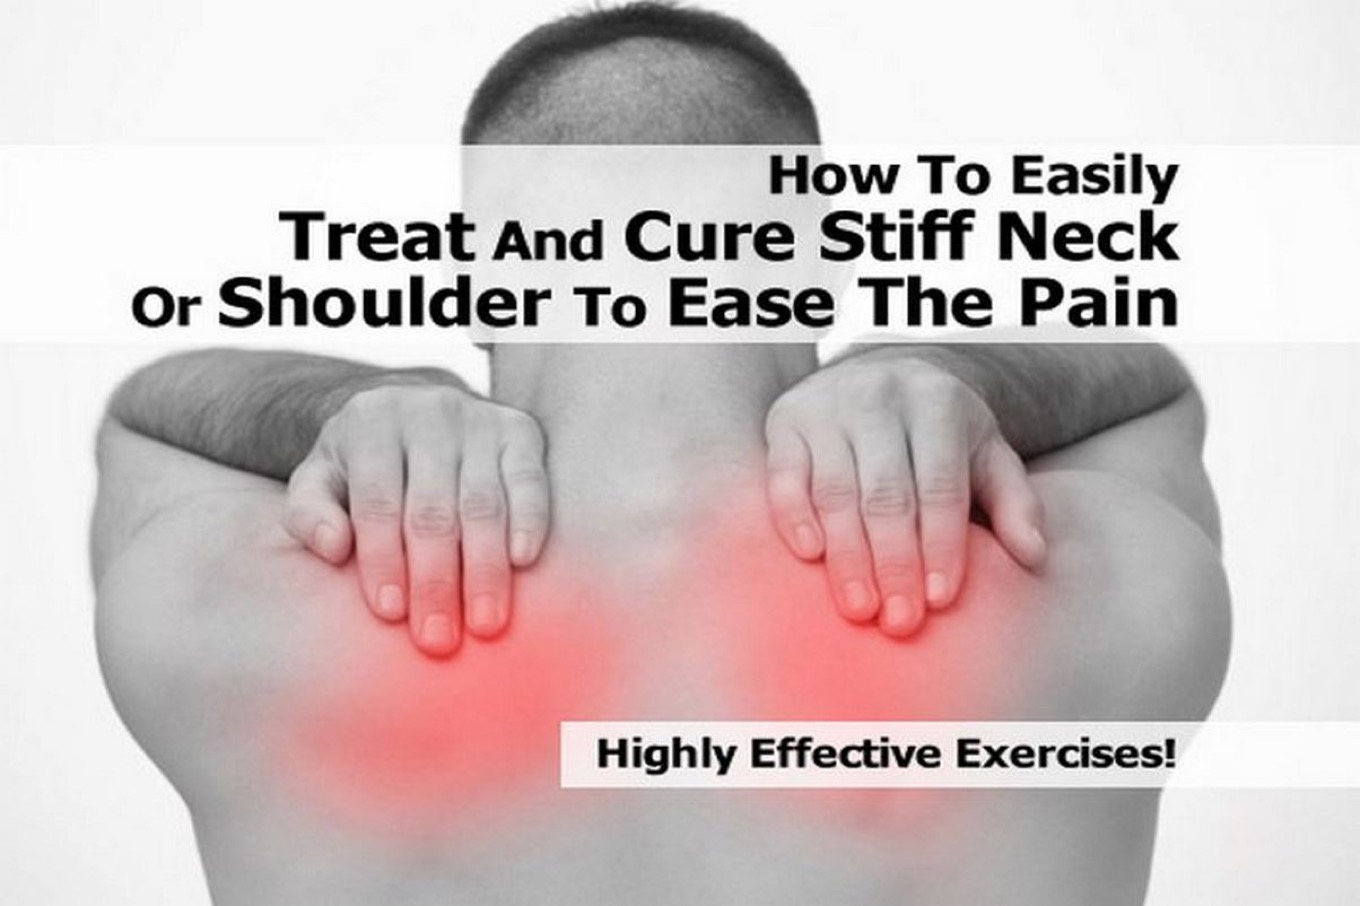 How To Easily Treat And Cure Stiff Neck Or Shoulder To ...